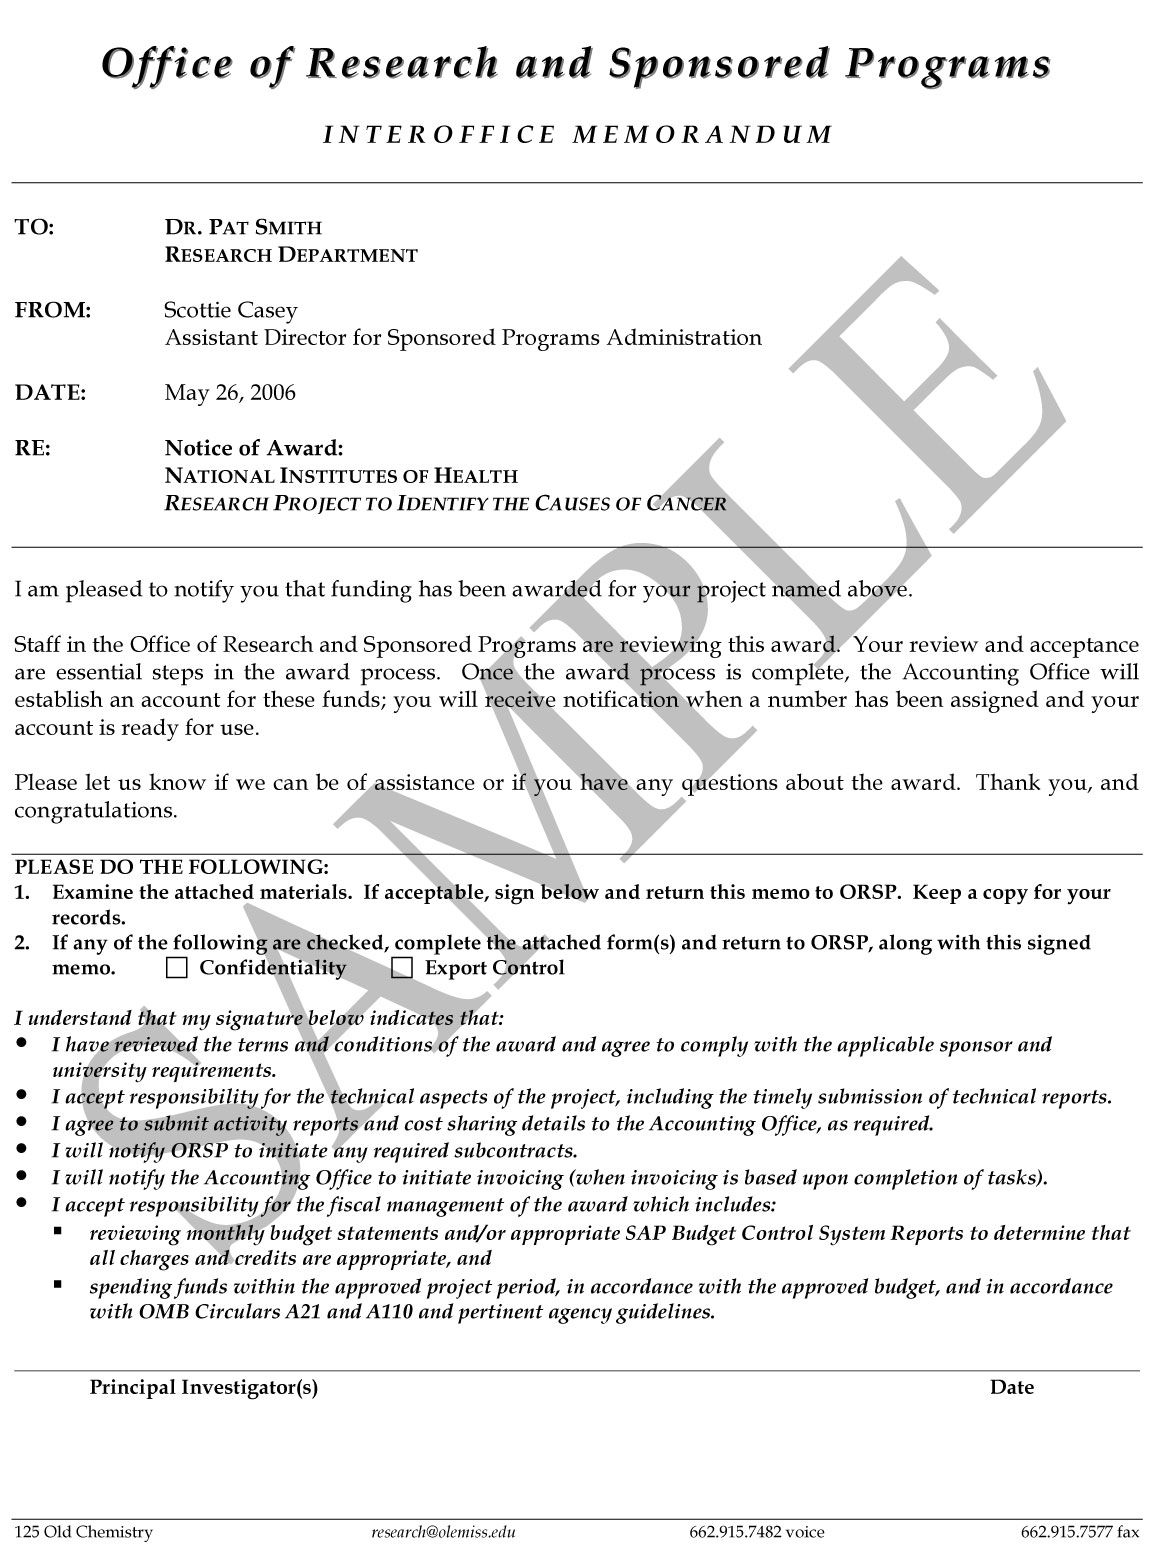 Doc652800 Transmittal Memo Template Transmittal Memo Examples – Letter of Transmittal for Proposal